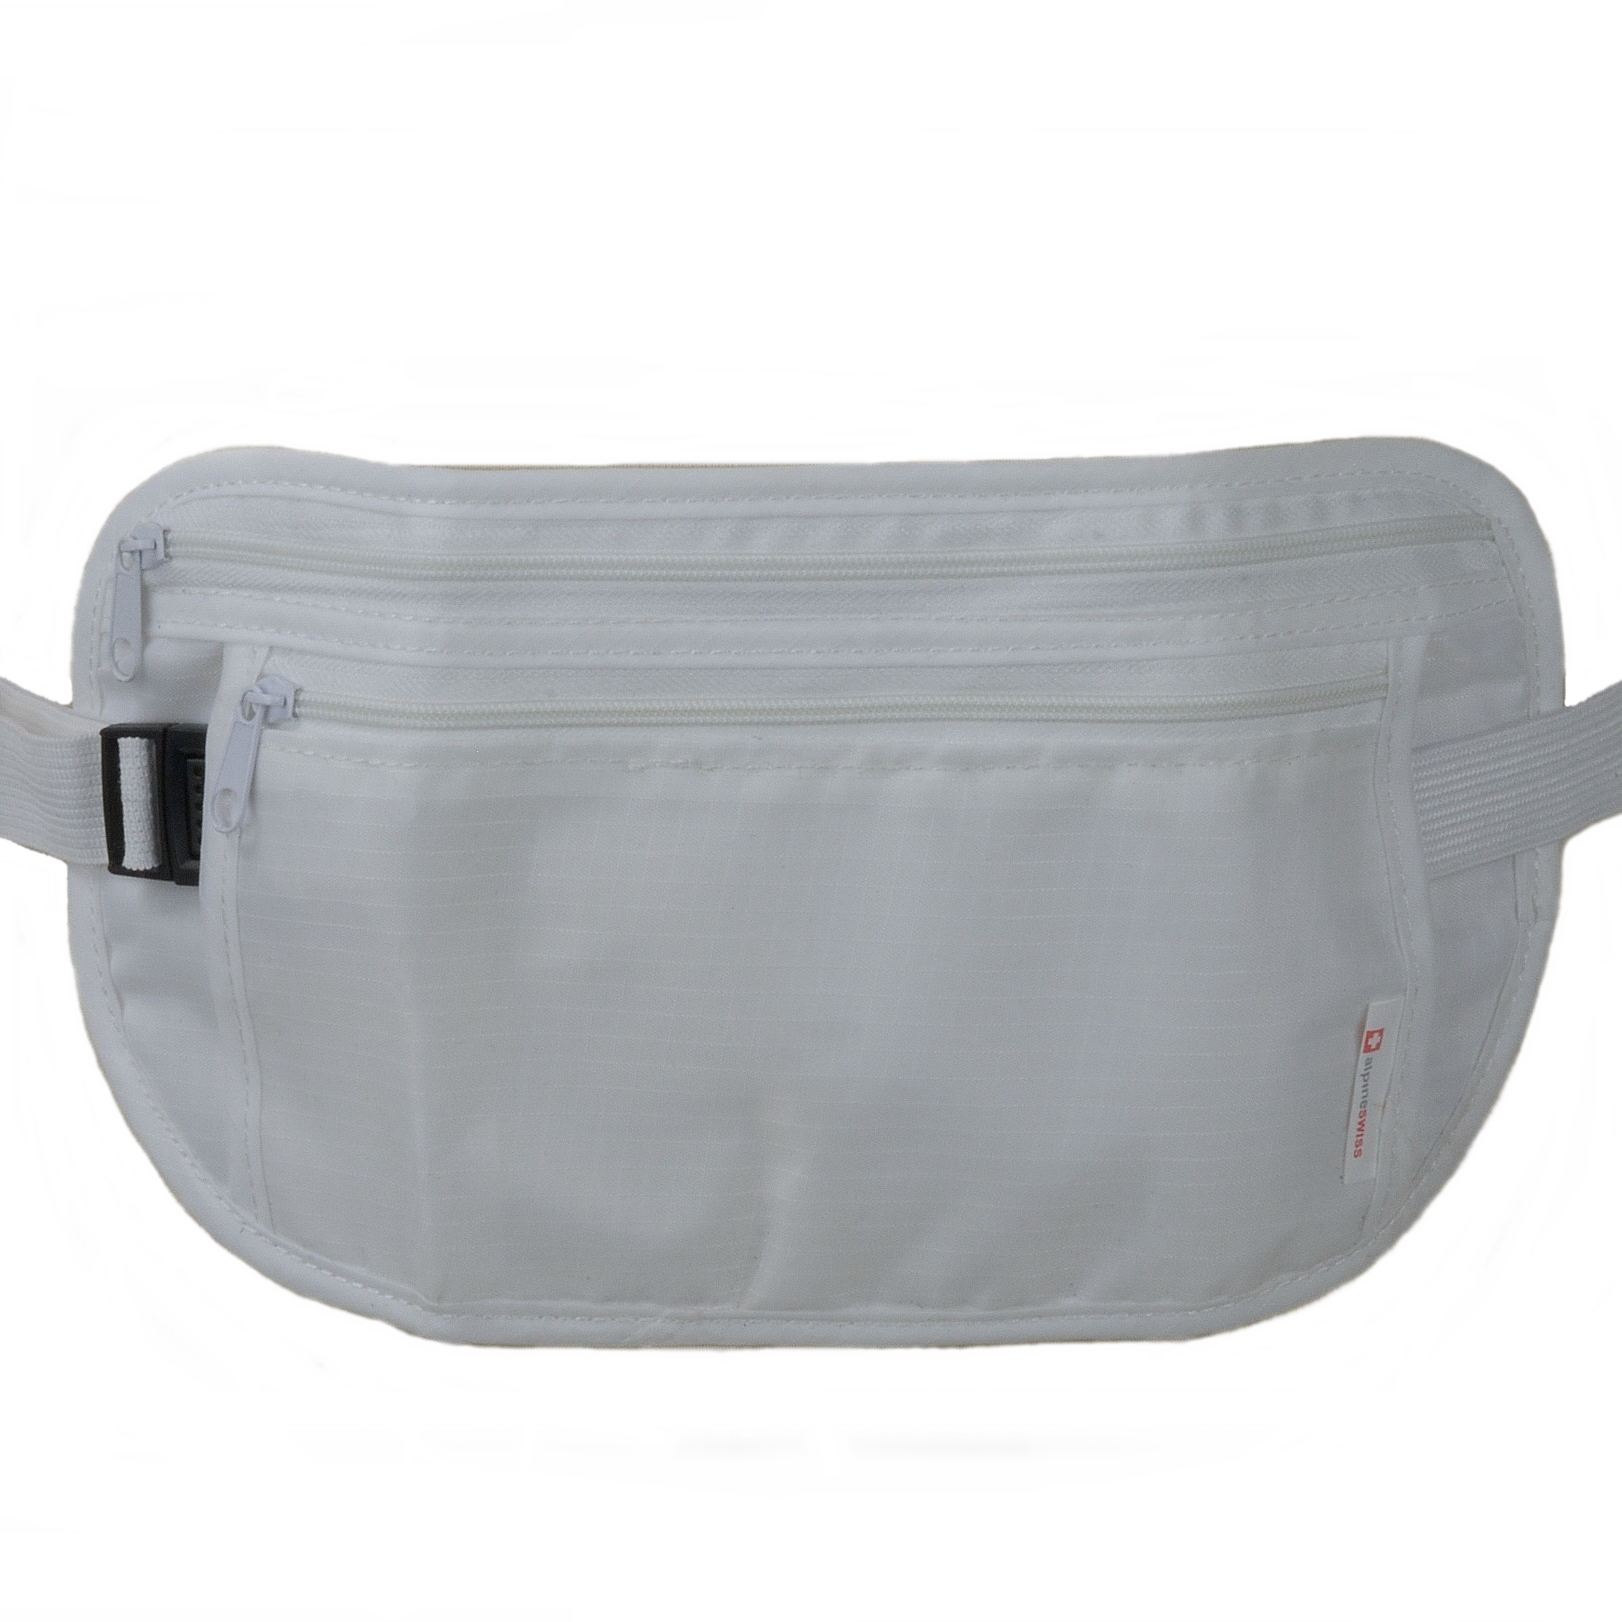 Alpine Swiss Travel Wallet Waist Belt Neck Pouch Undercover ...